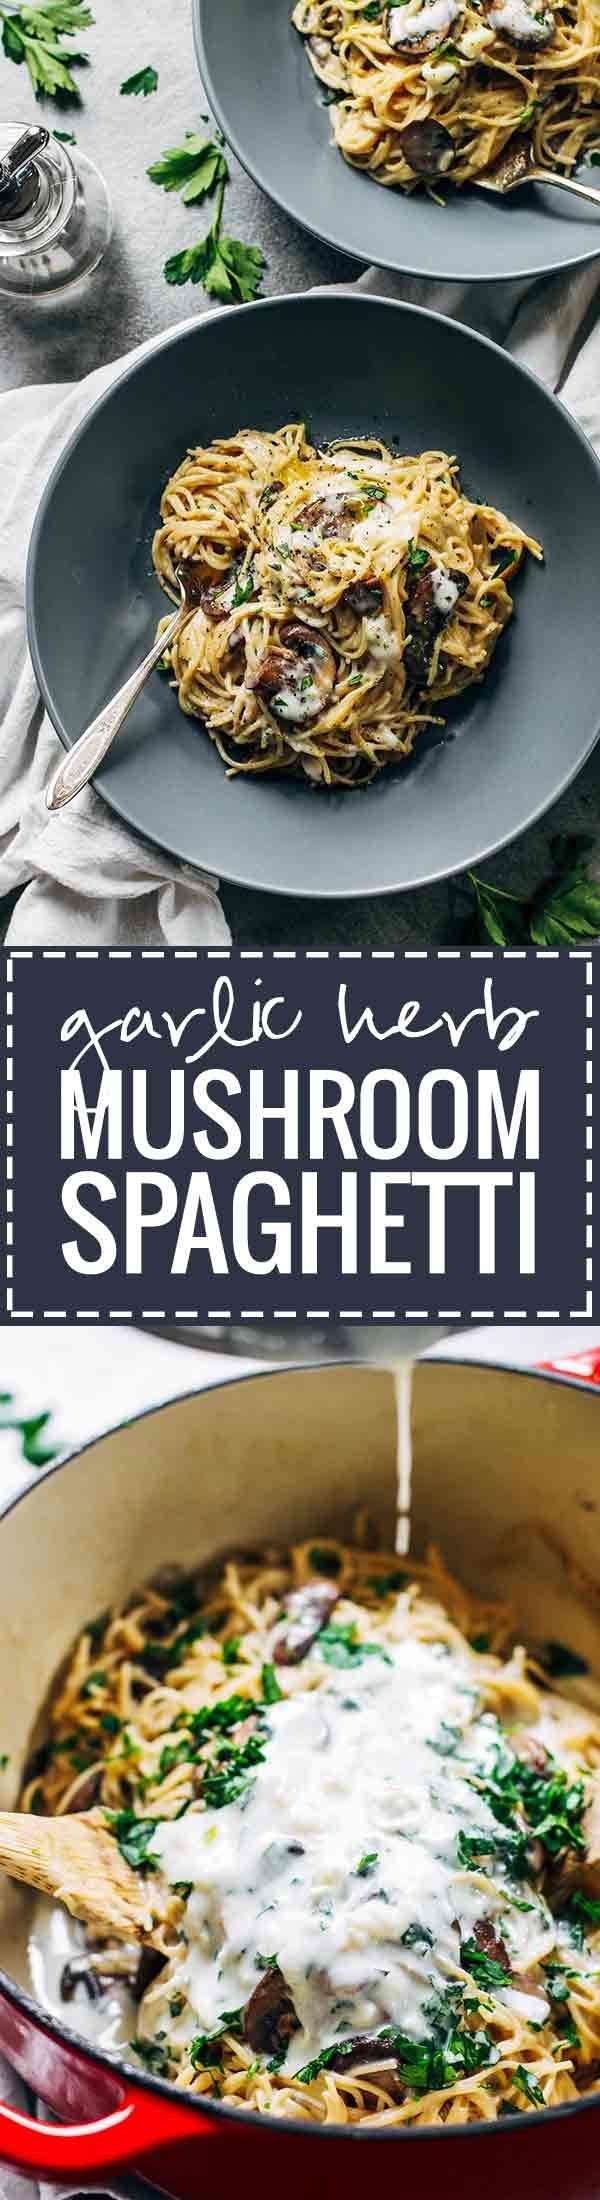 Creamy Garlic Herb Mushroom Spaghetti - this recipe is total comfort food! Simple ingredients, ready in about 30 minutes, vegetarian. ♡